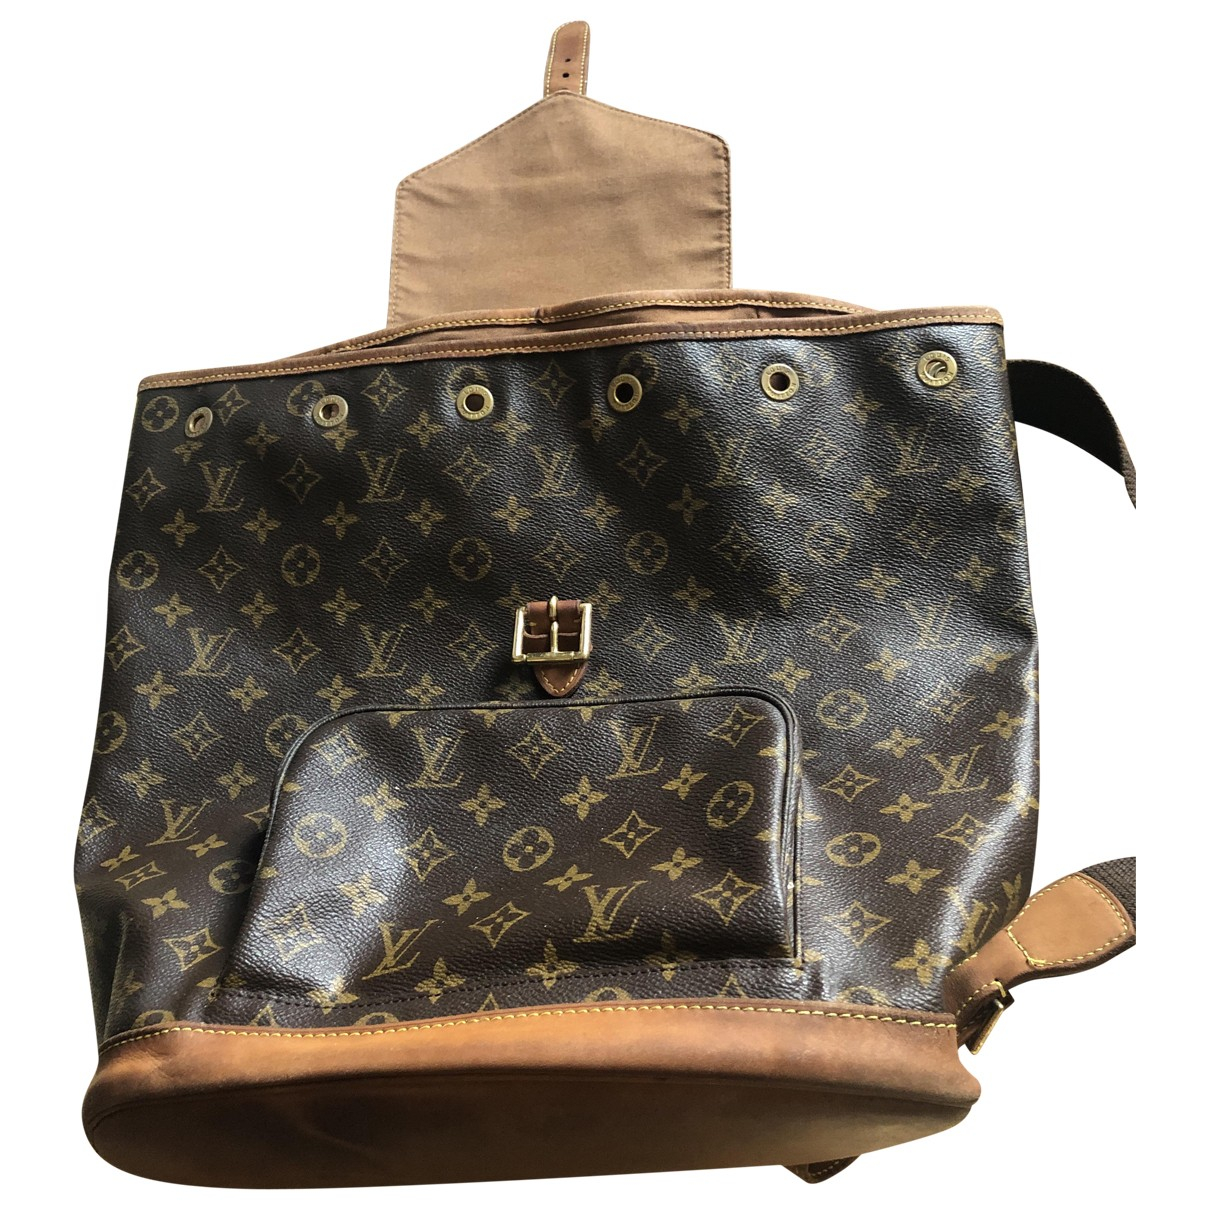 Mochila Montsouris de Lona Louis Vuitton